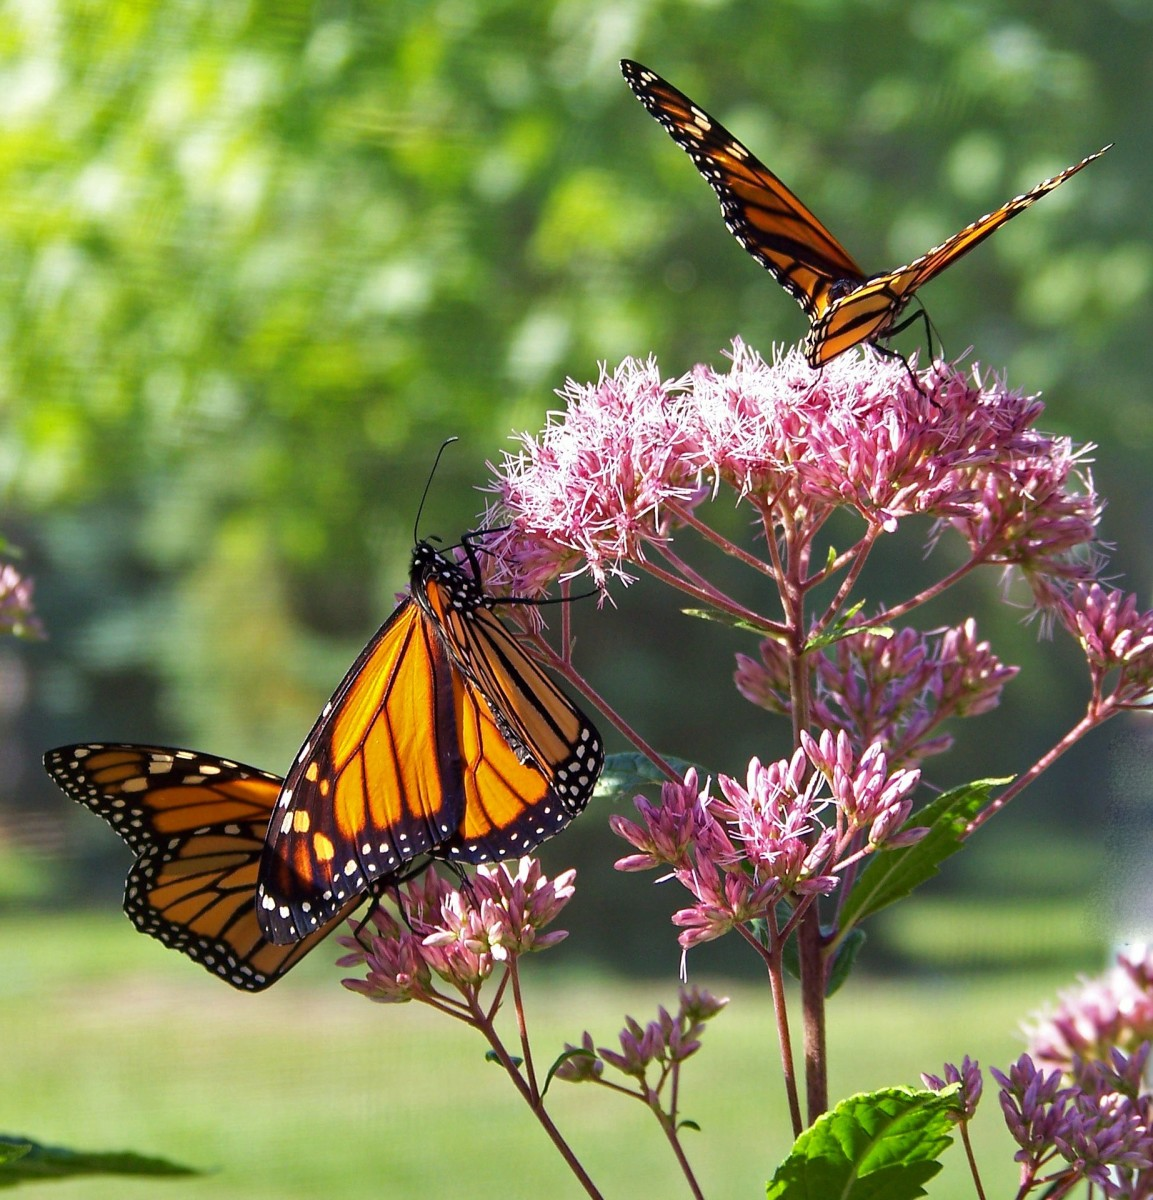 The State Insect of Texas: the Monarch Butterfly